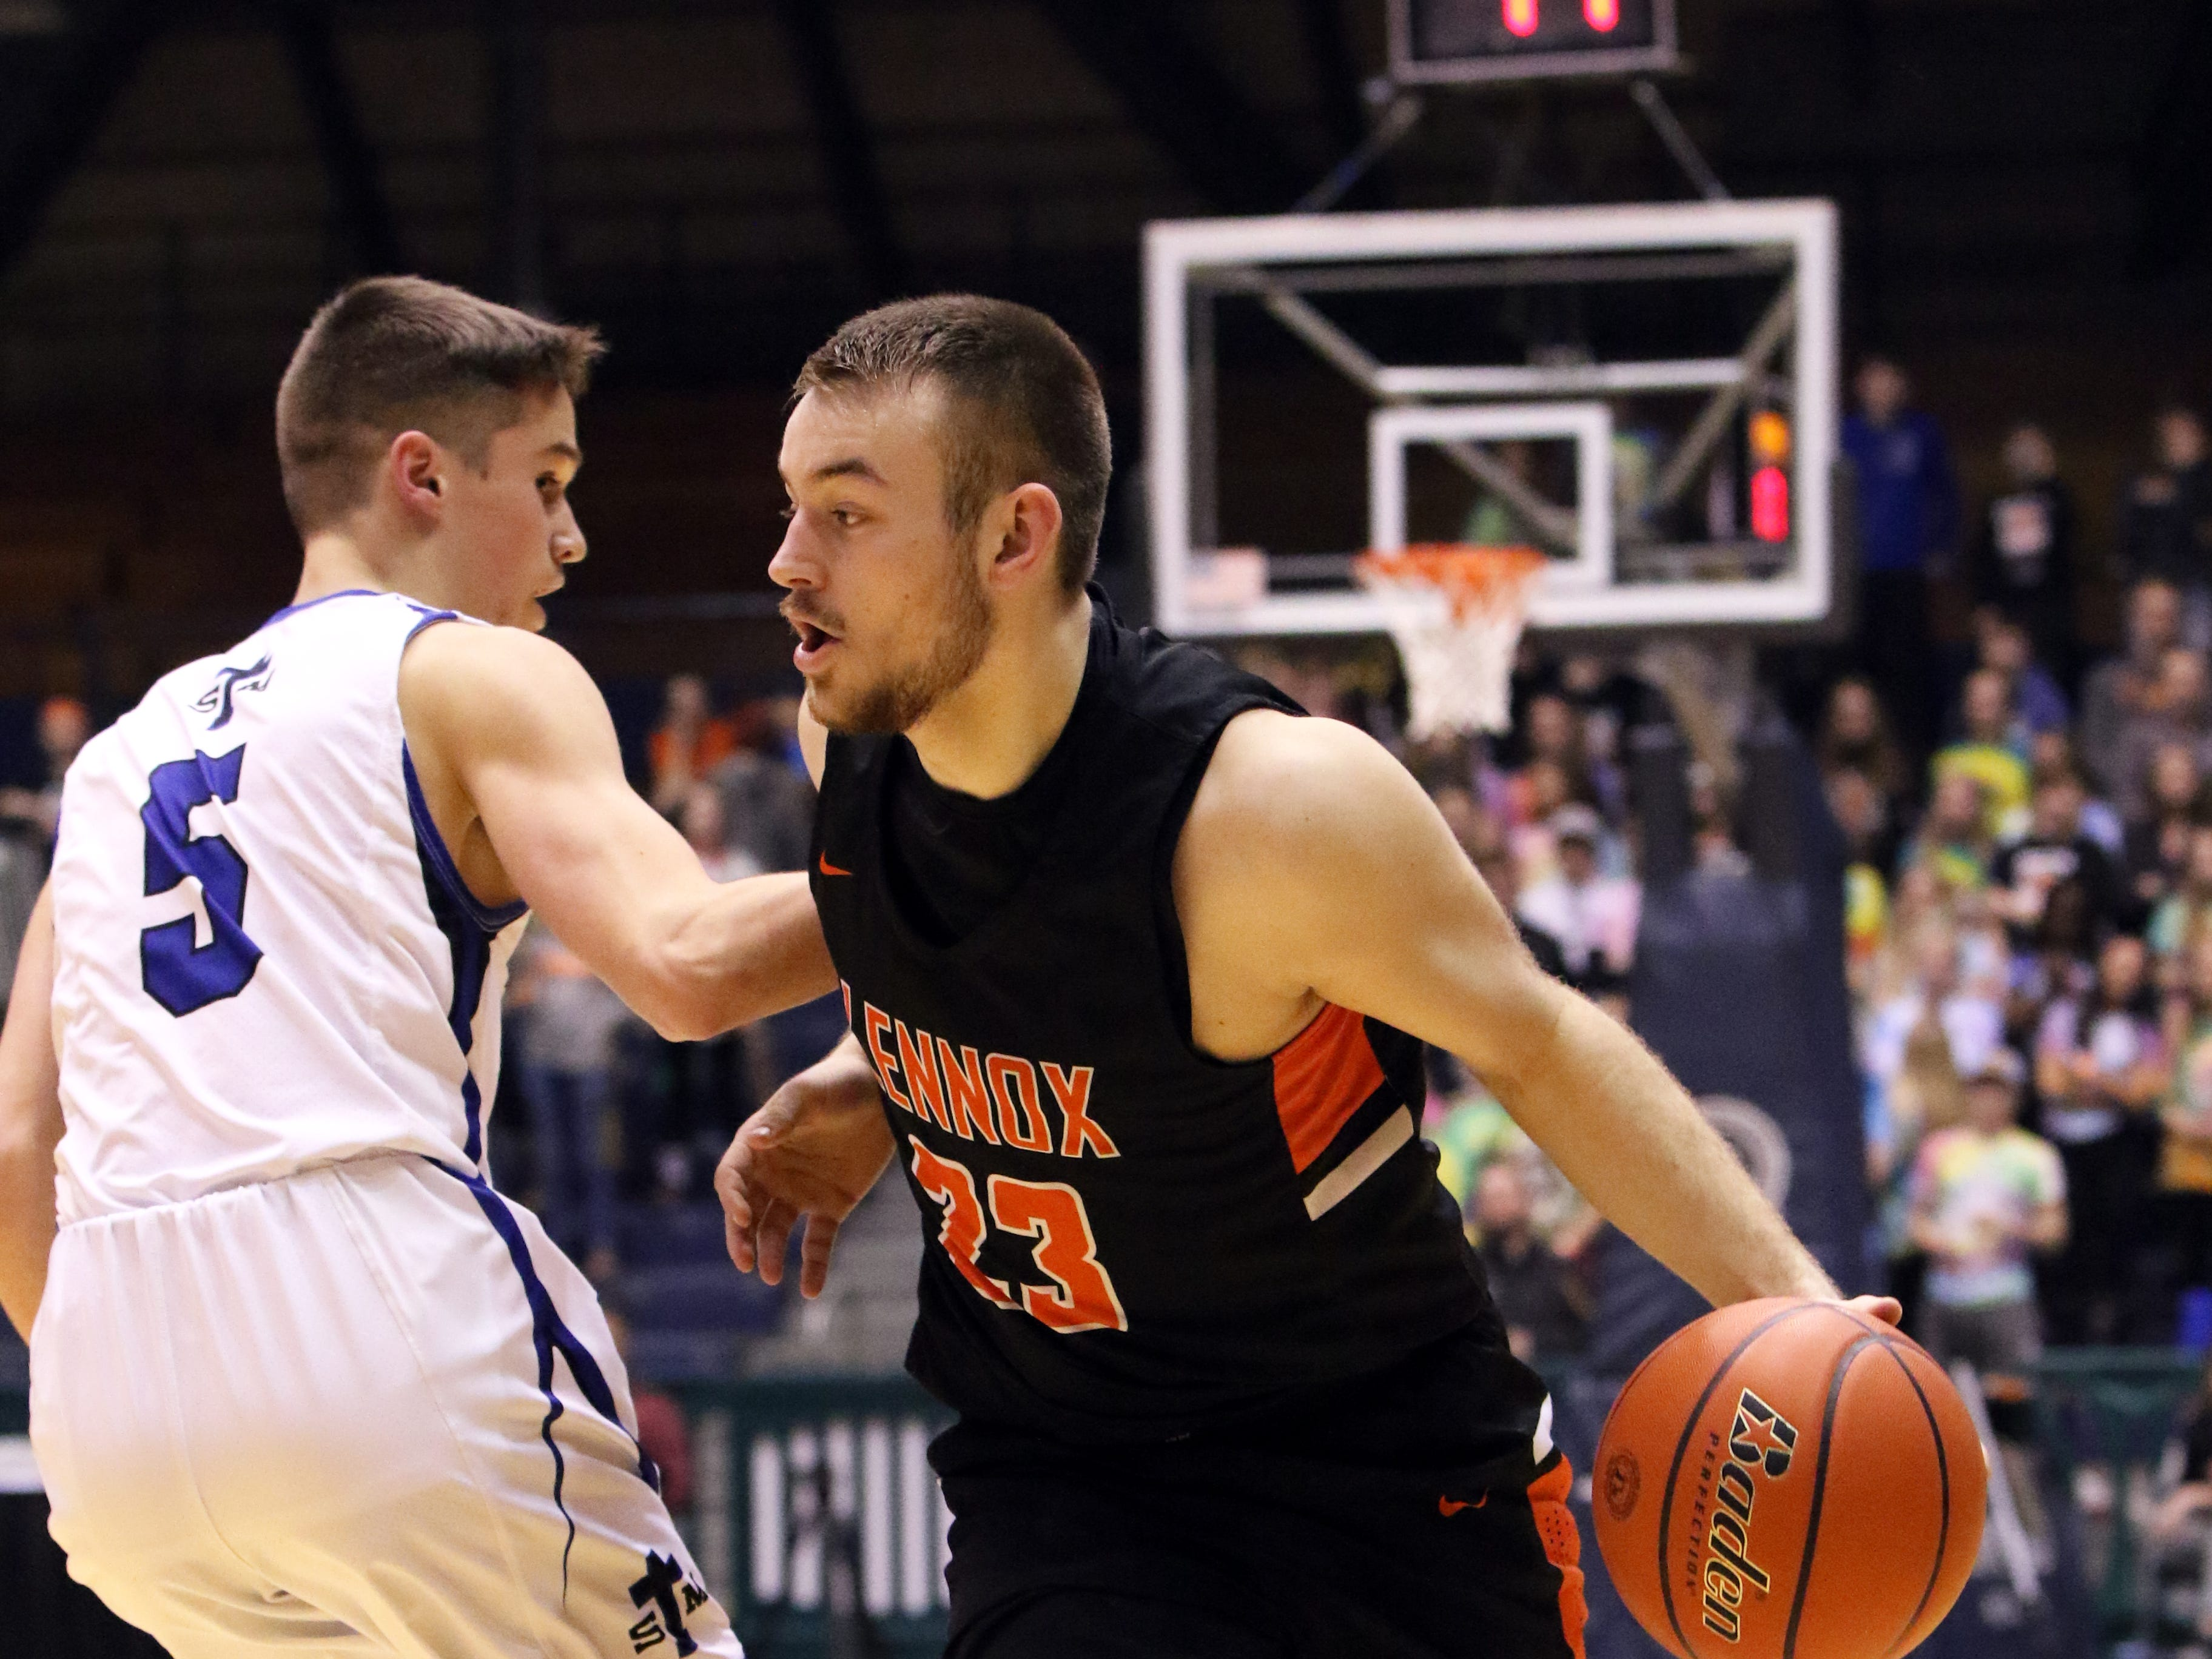 Will Daugherty of Lennox goes around the defense by Michael Gylten of St Thomas More during Thursday night's game at the Arena in Sioux Falls.